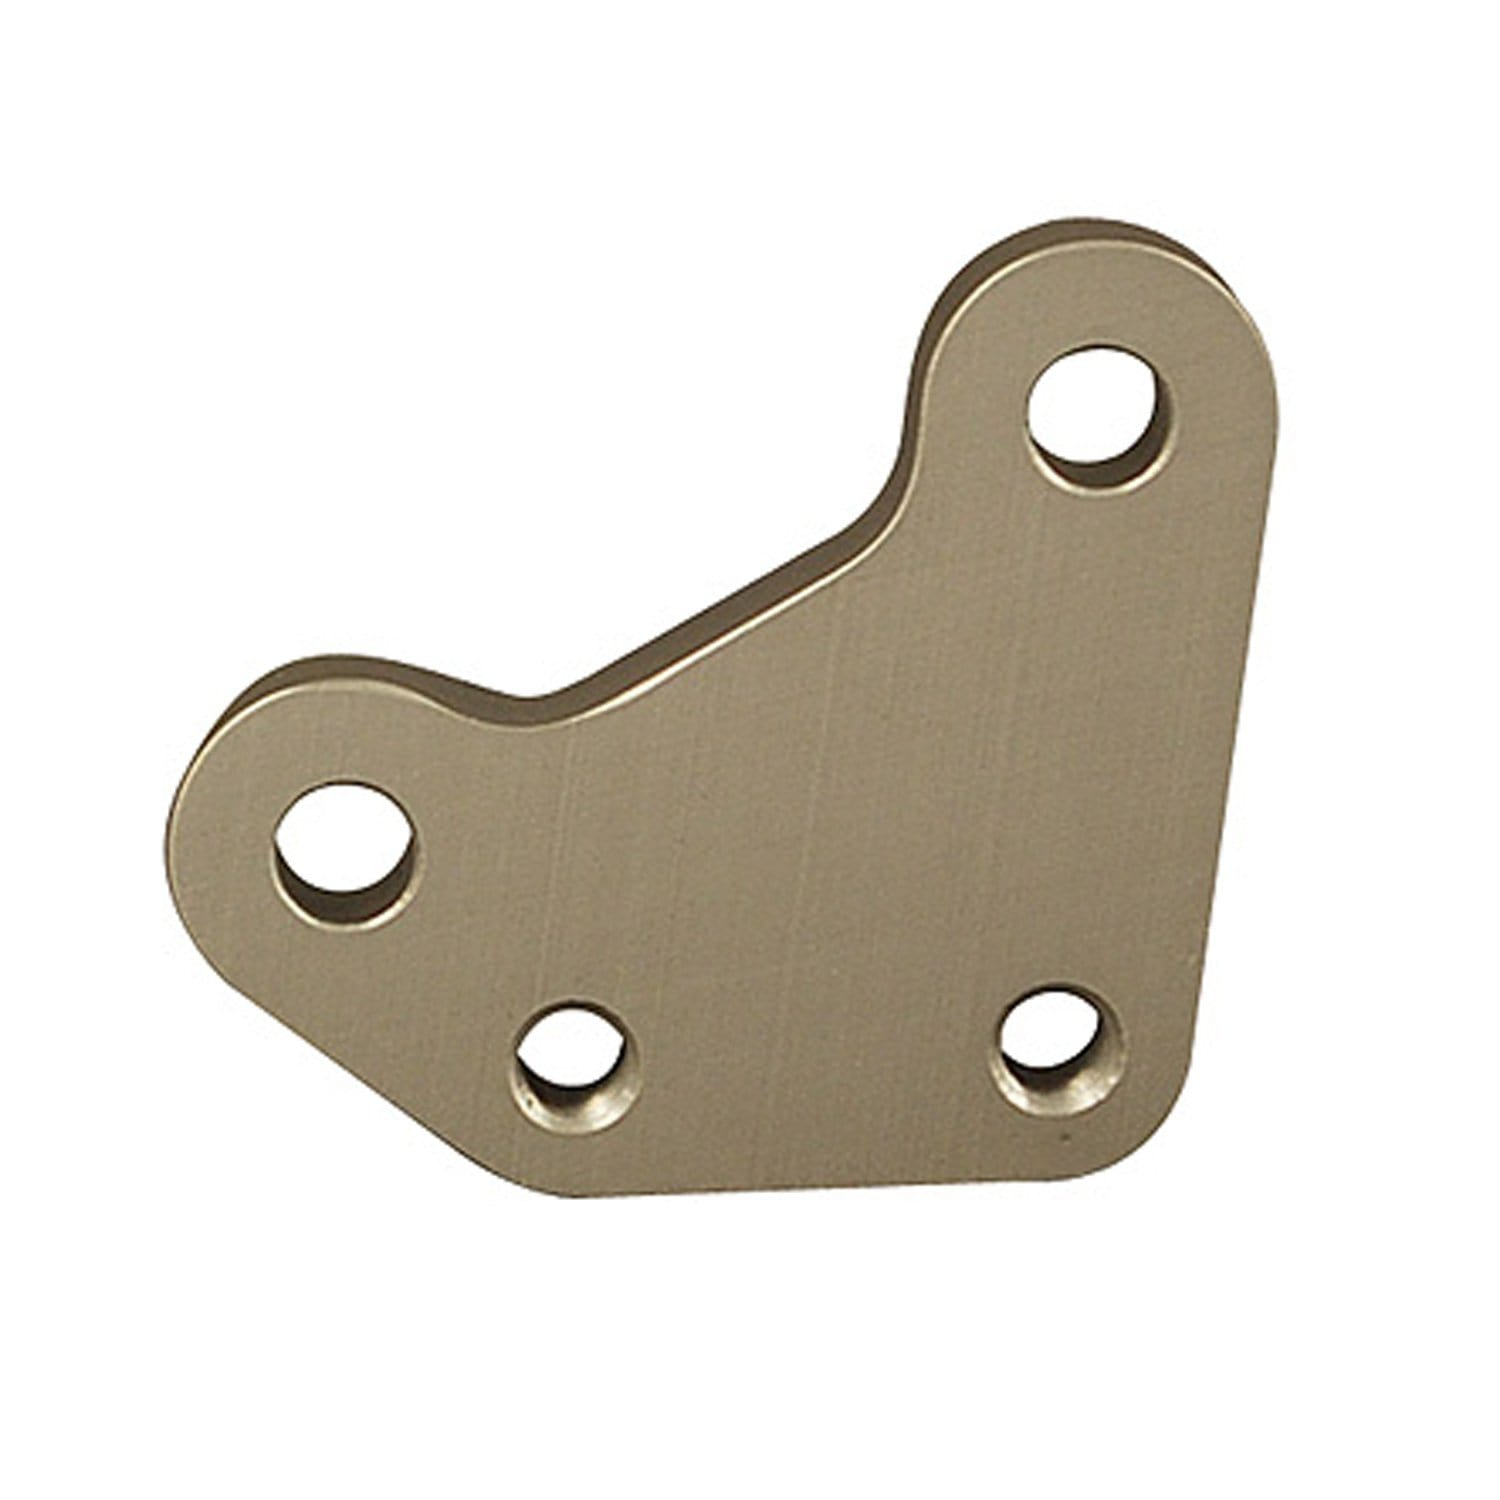 05-0730MC Aprilia RS125 Master Cylinder Bracket - Woodcraft Technologies - Motorcycle Parts